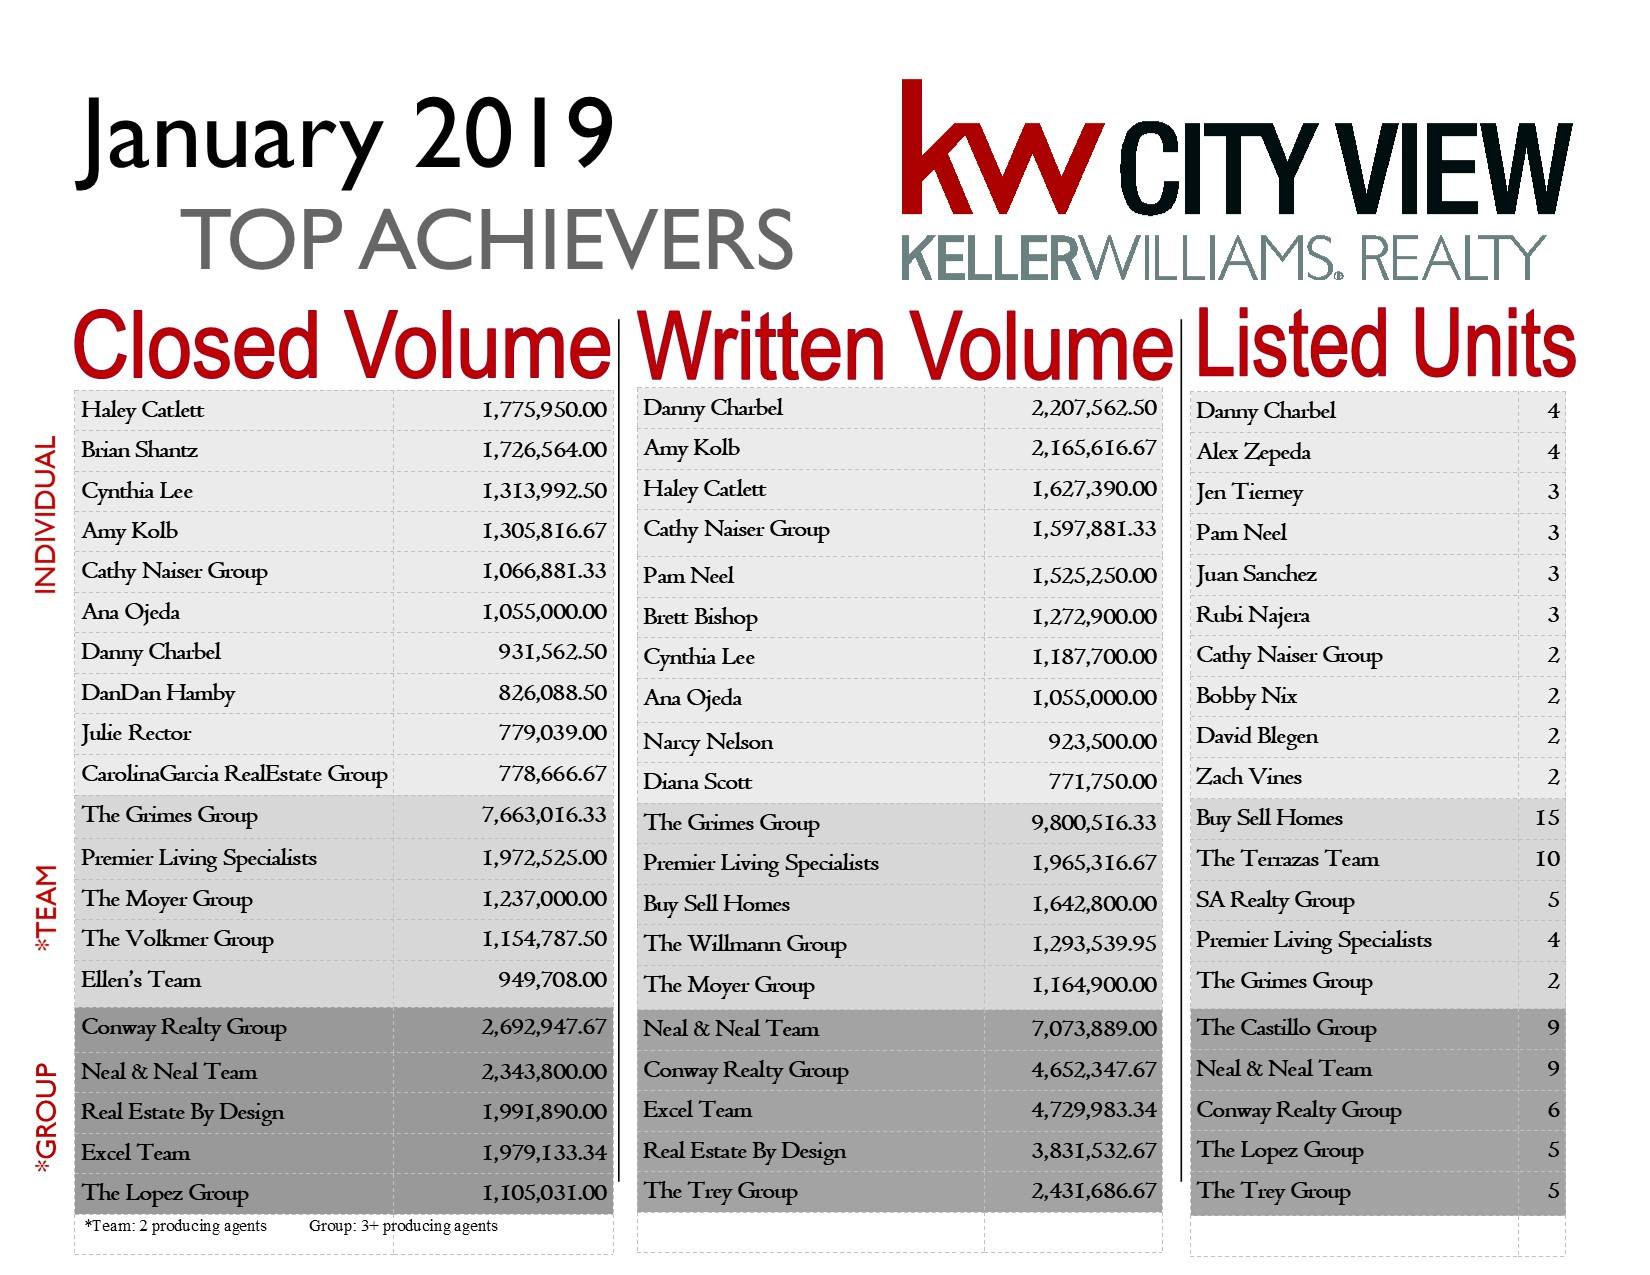 Keller Williams Top Achievers for January 2019